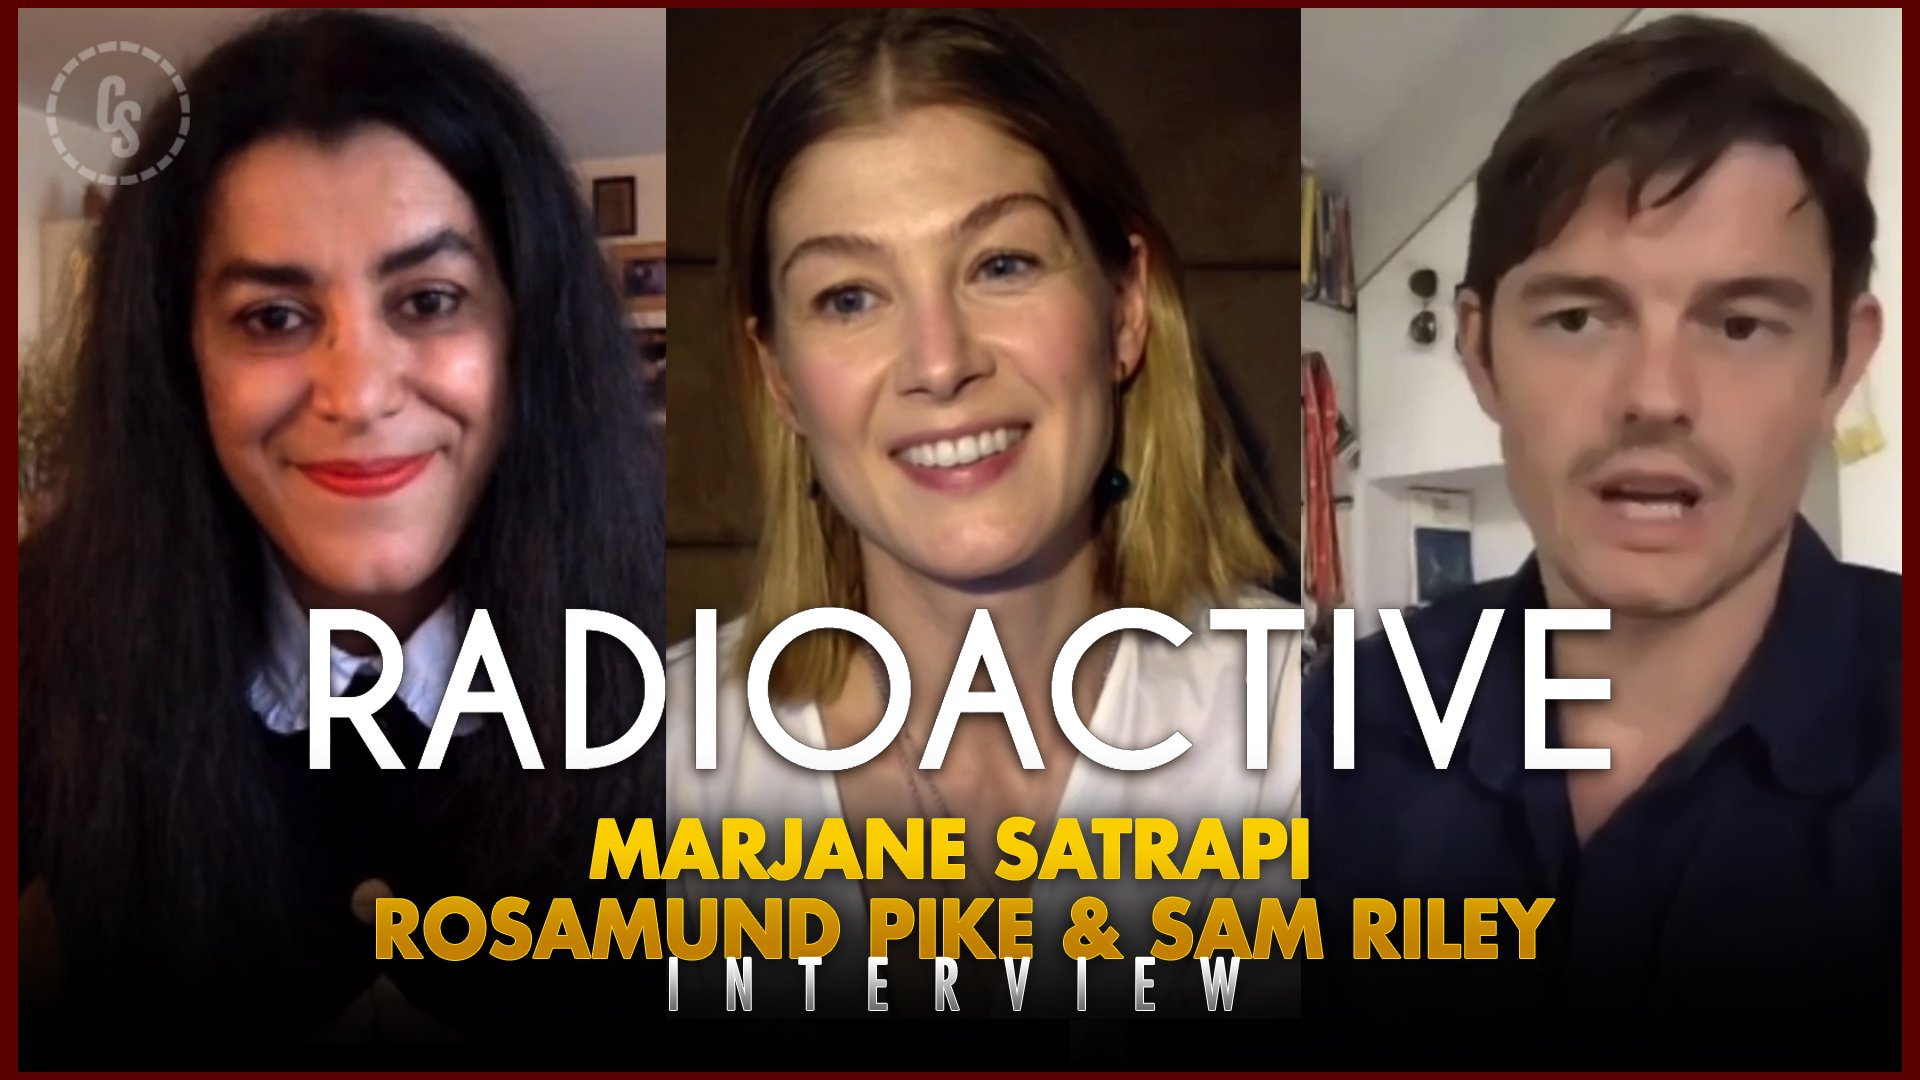 CS Video: Radioactive Interviews With Director & Stars!